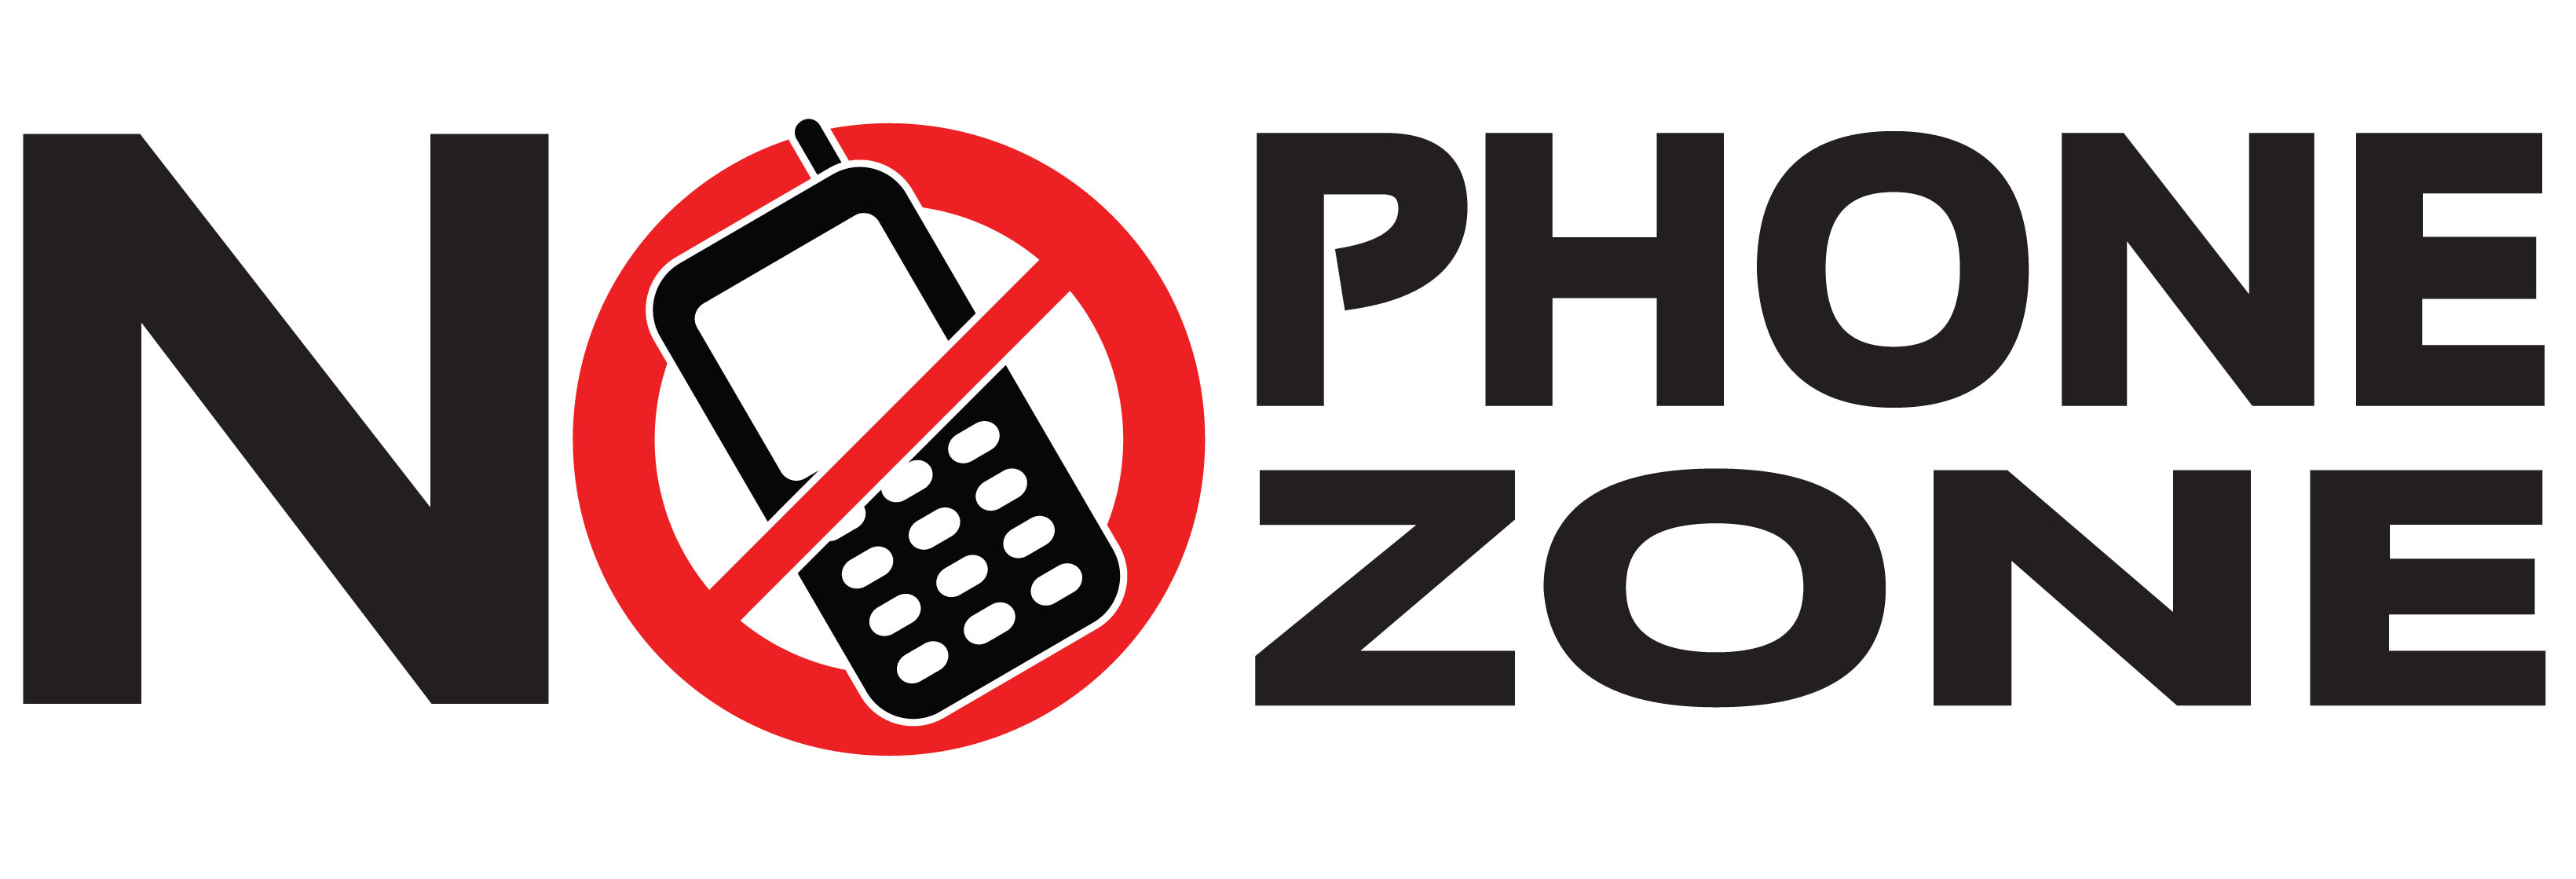 3280x1119 No Cell Phone Zone Clip Art